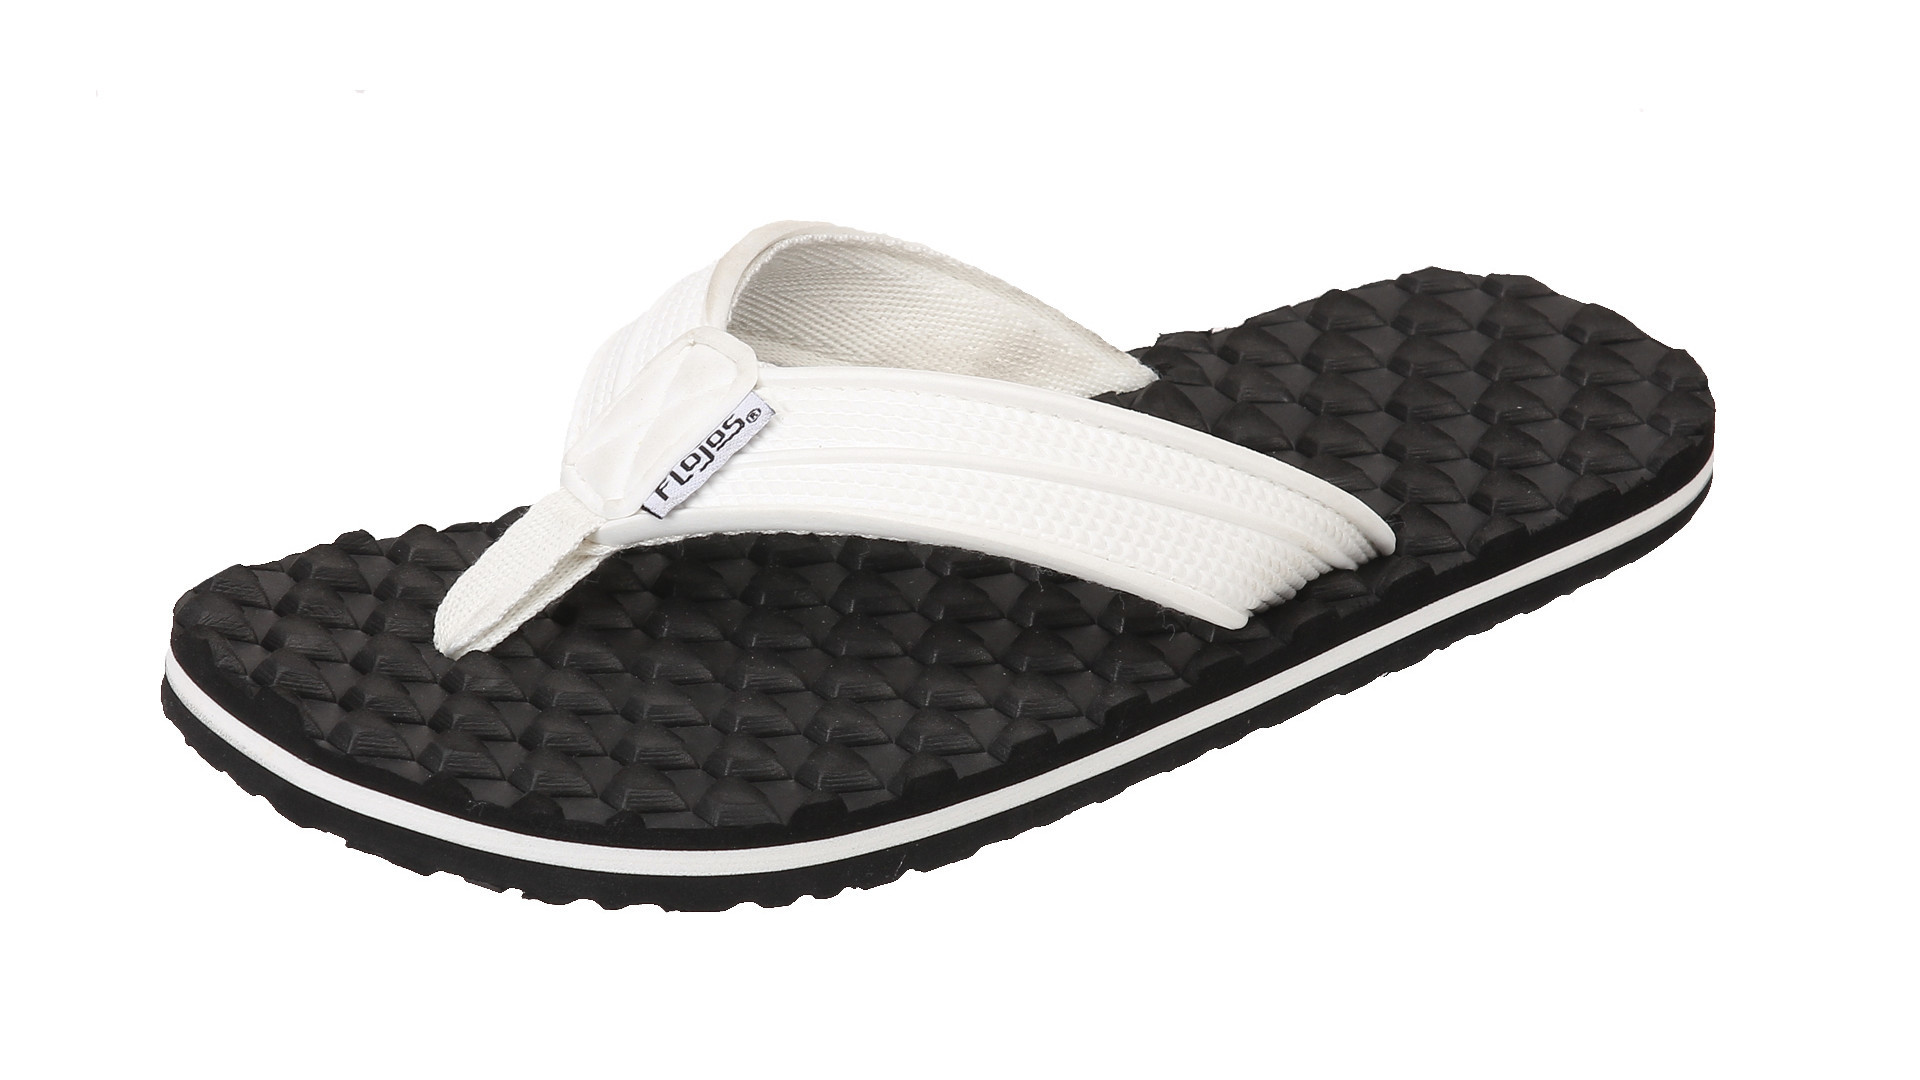 Womens Water Shoes With Arch Support